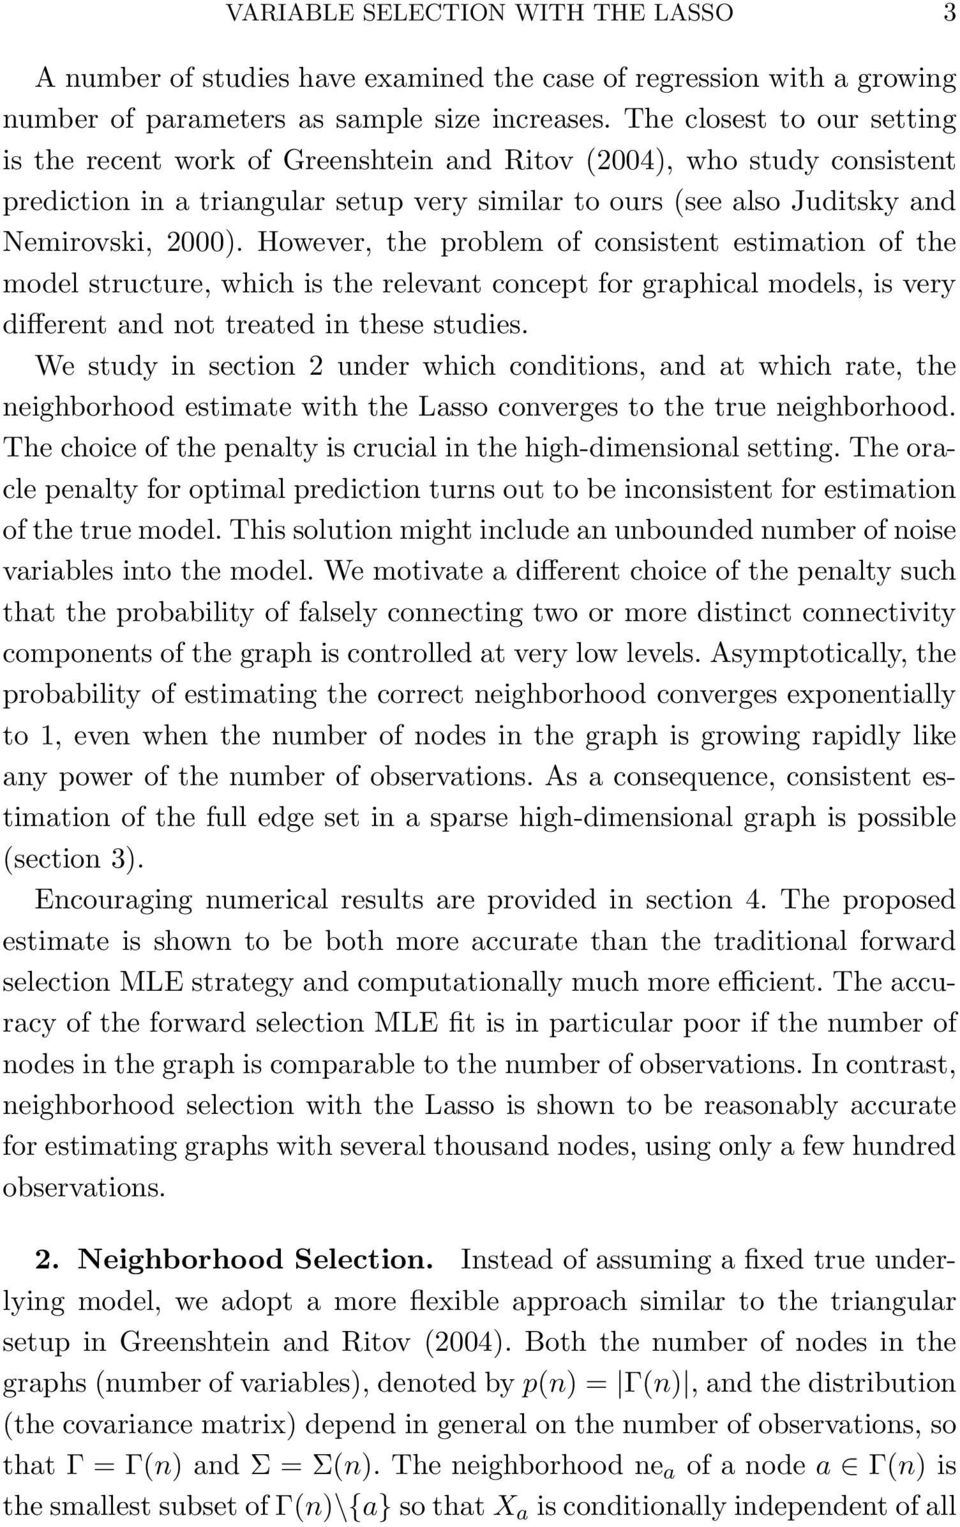 However, the prolem of consistent estimation of the model structure, which is the relevant concept for graphical models, is very different and not treated in these studies.